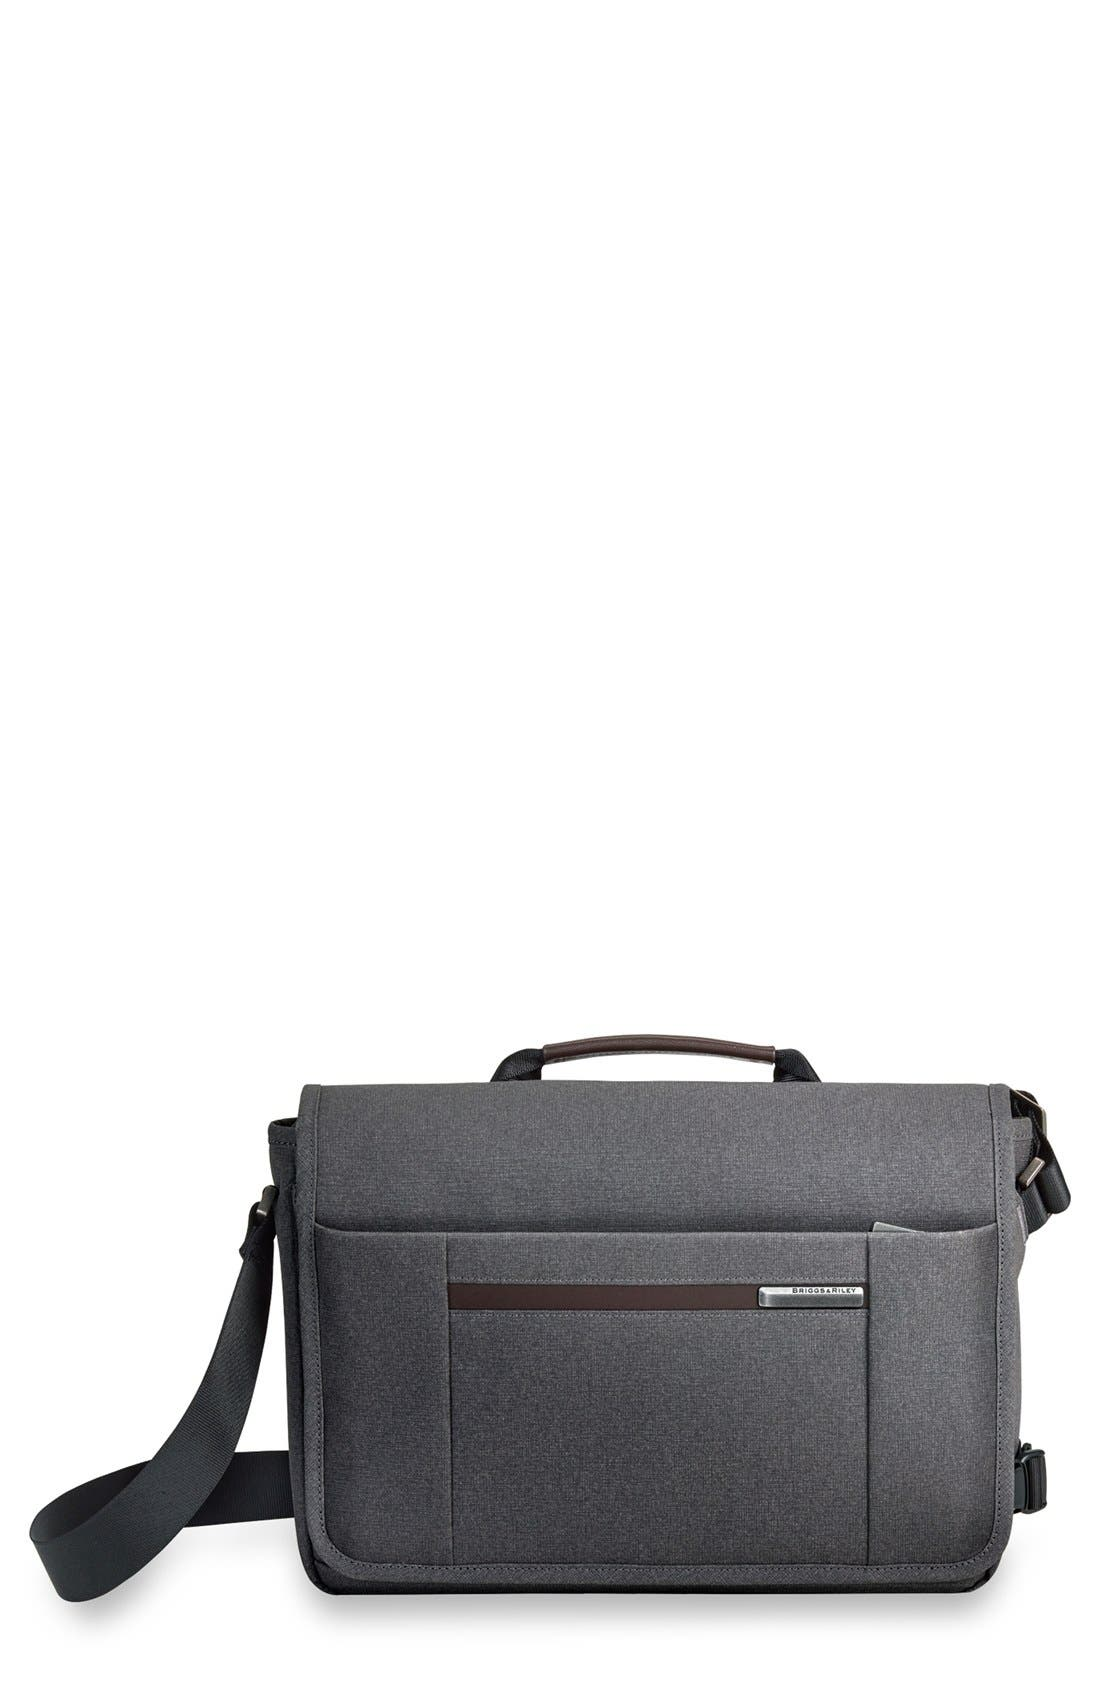 'Kinzie Street - Micro' Messenger Bag,                             Main thumbnail 1, color,                             Grey